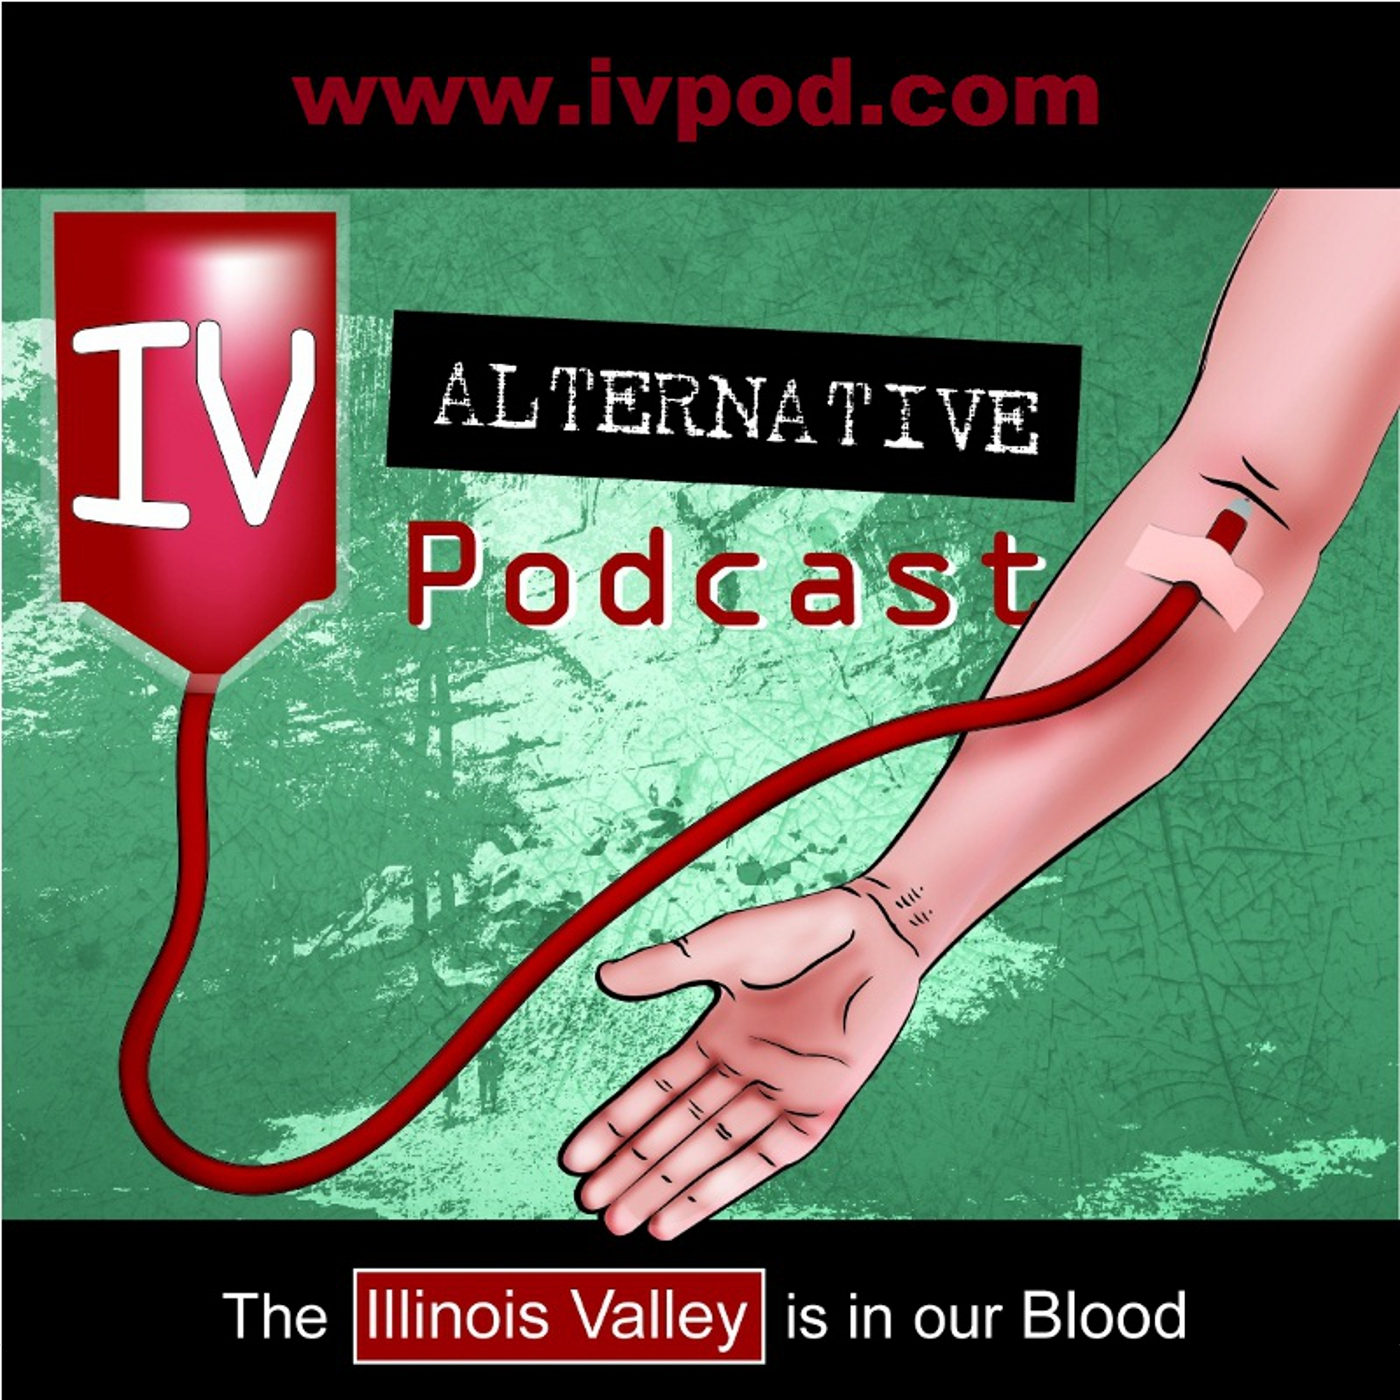 Illinois Valley Alternative Podcast